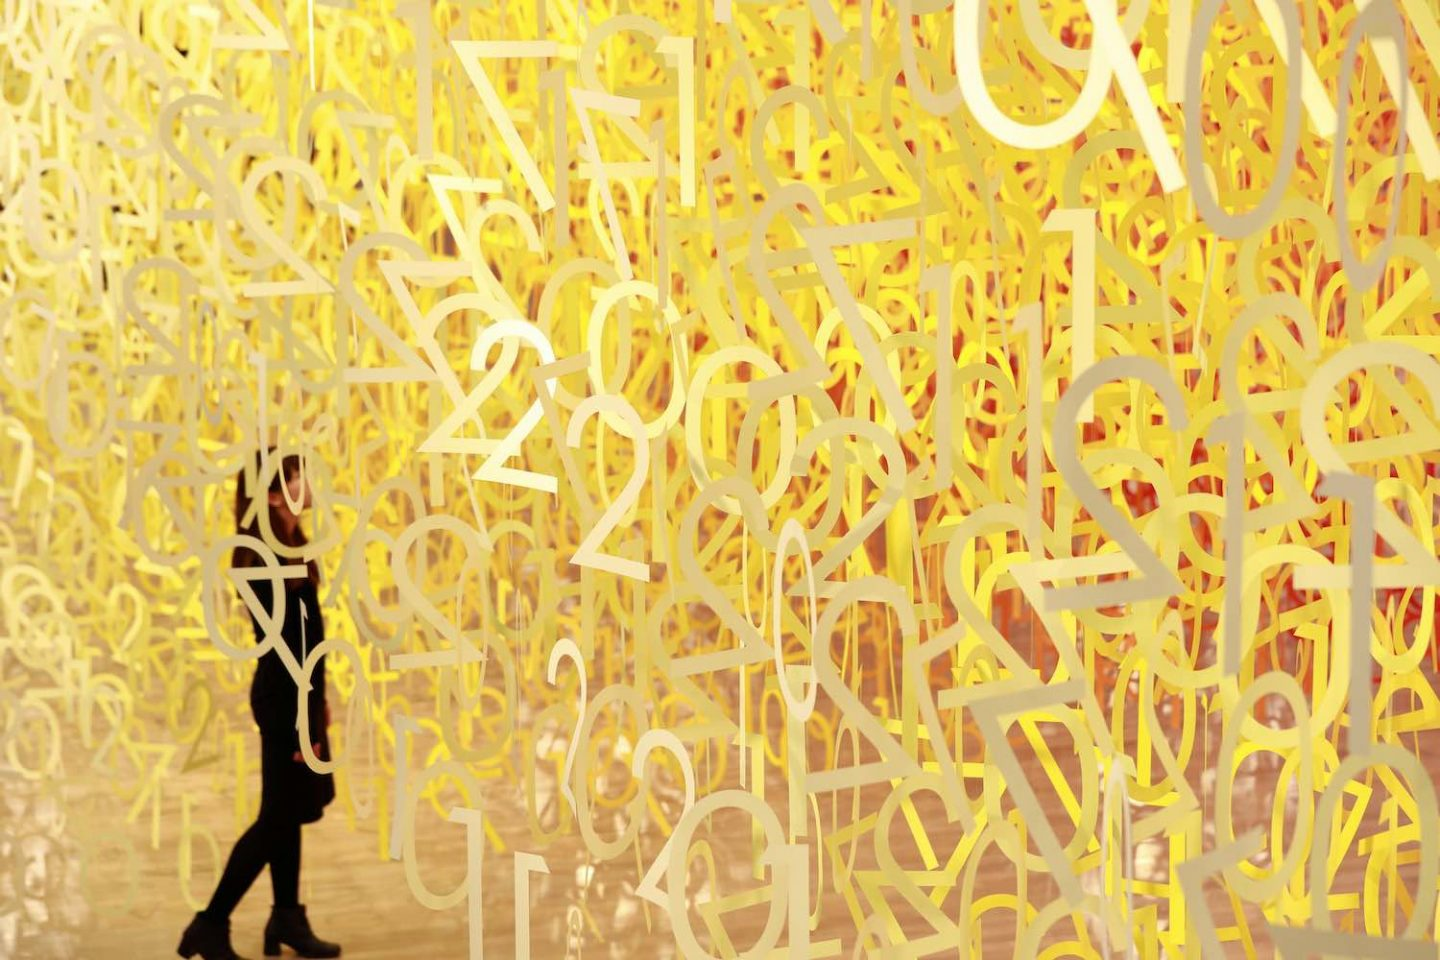 Art_Emmanuelle_Moureaux_Forest_Of_Numbers_10